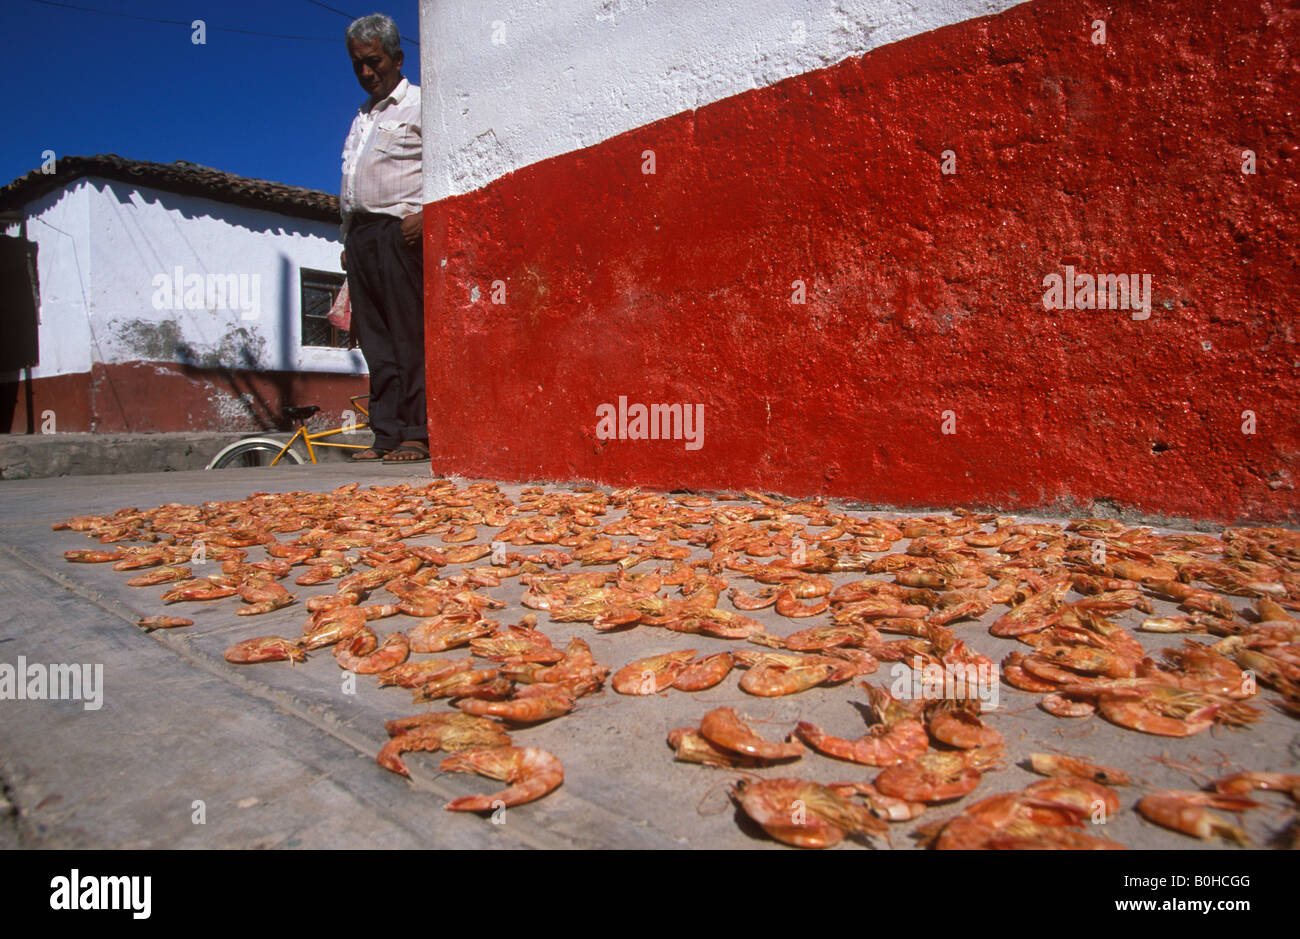 Camarones, crabs laid out to dry, Mexcaltitan Island, Nayarit, Mexico - Stock Image